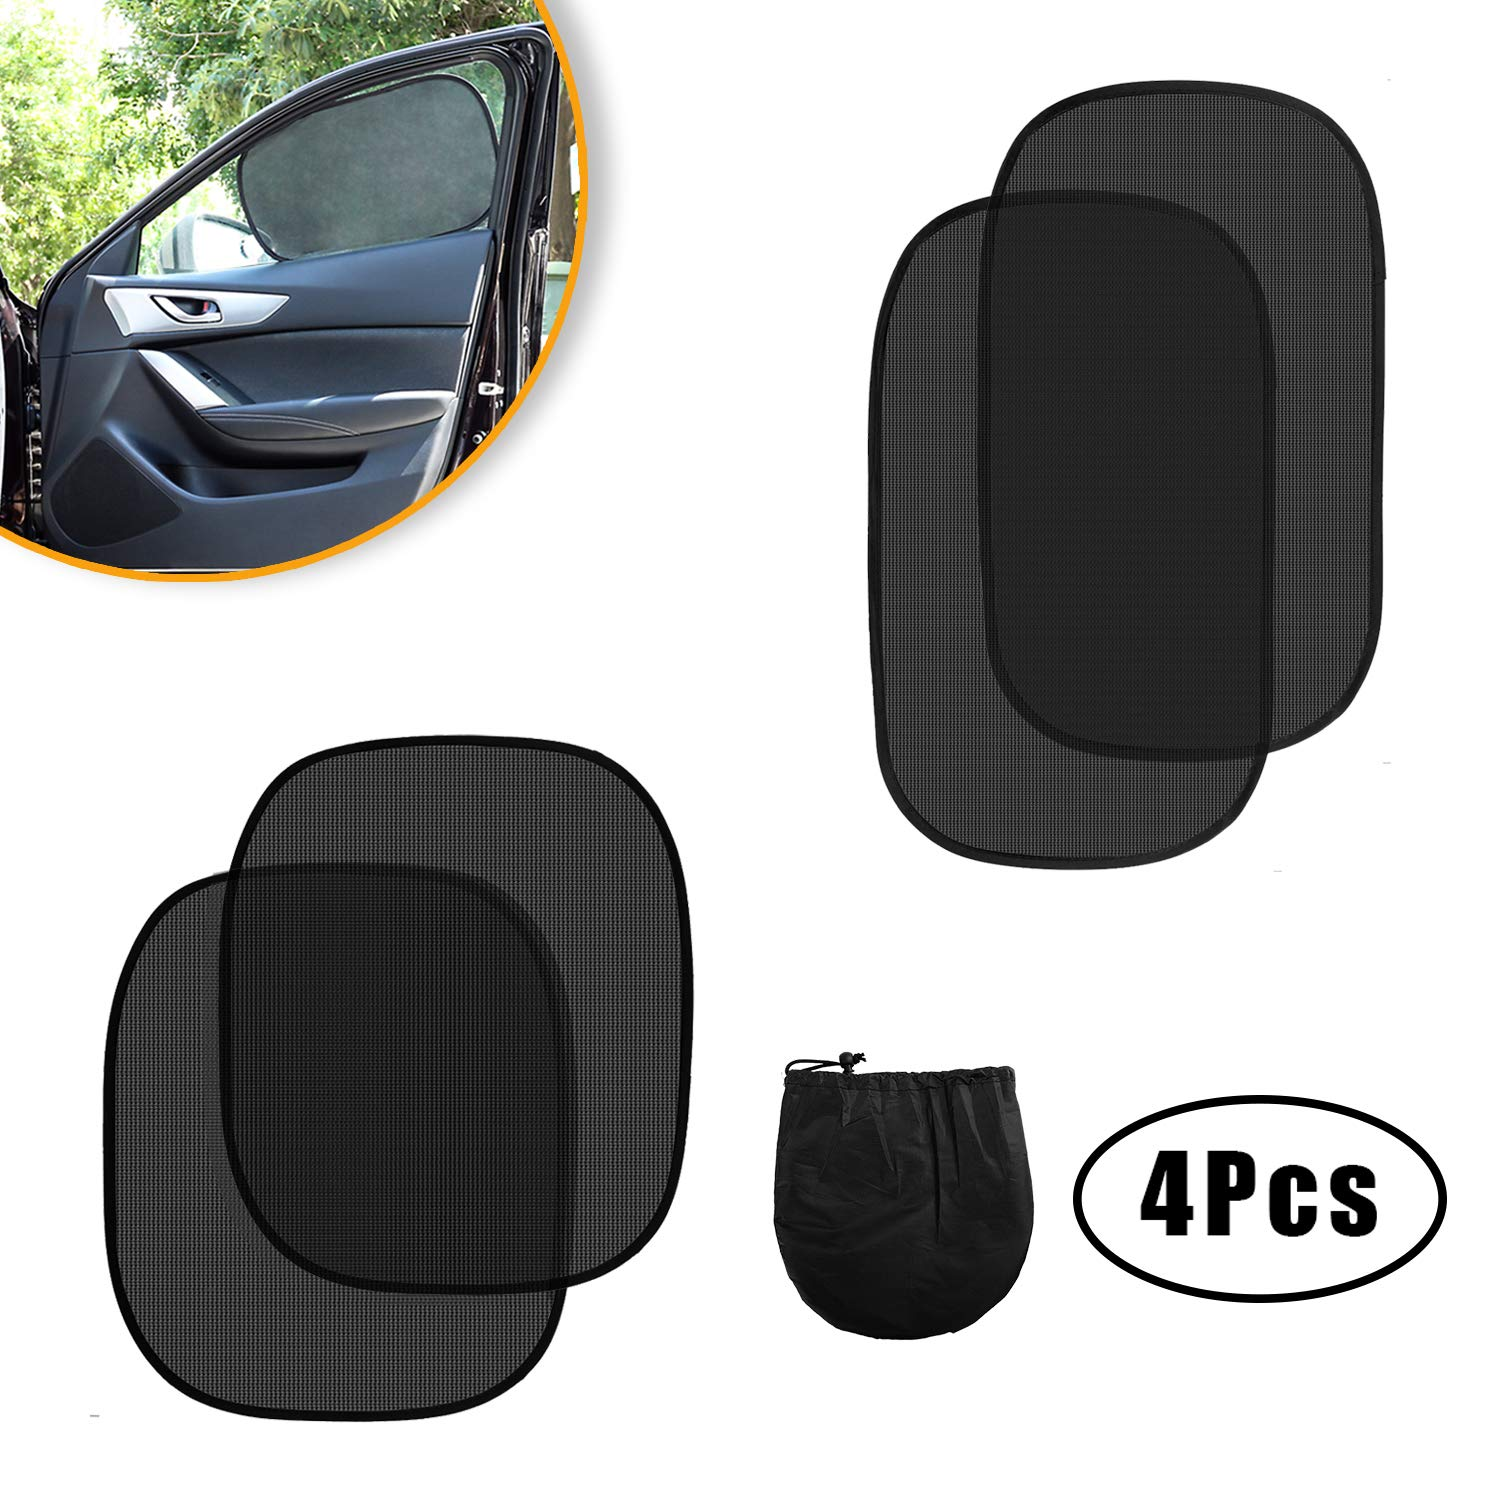 Zmoon Car Sun Shade - 4 Pack Cling Car Side and Rear Windows Sunshade Protect Kids and Pets from UV Ray, Sun Glare and Heat